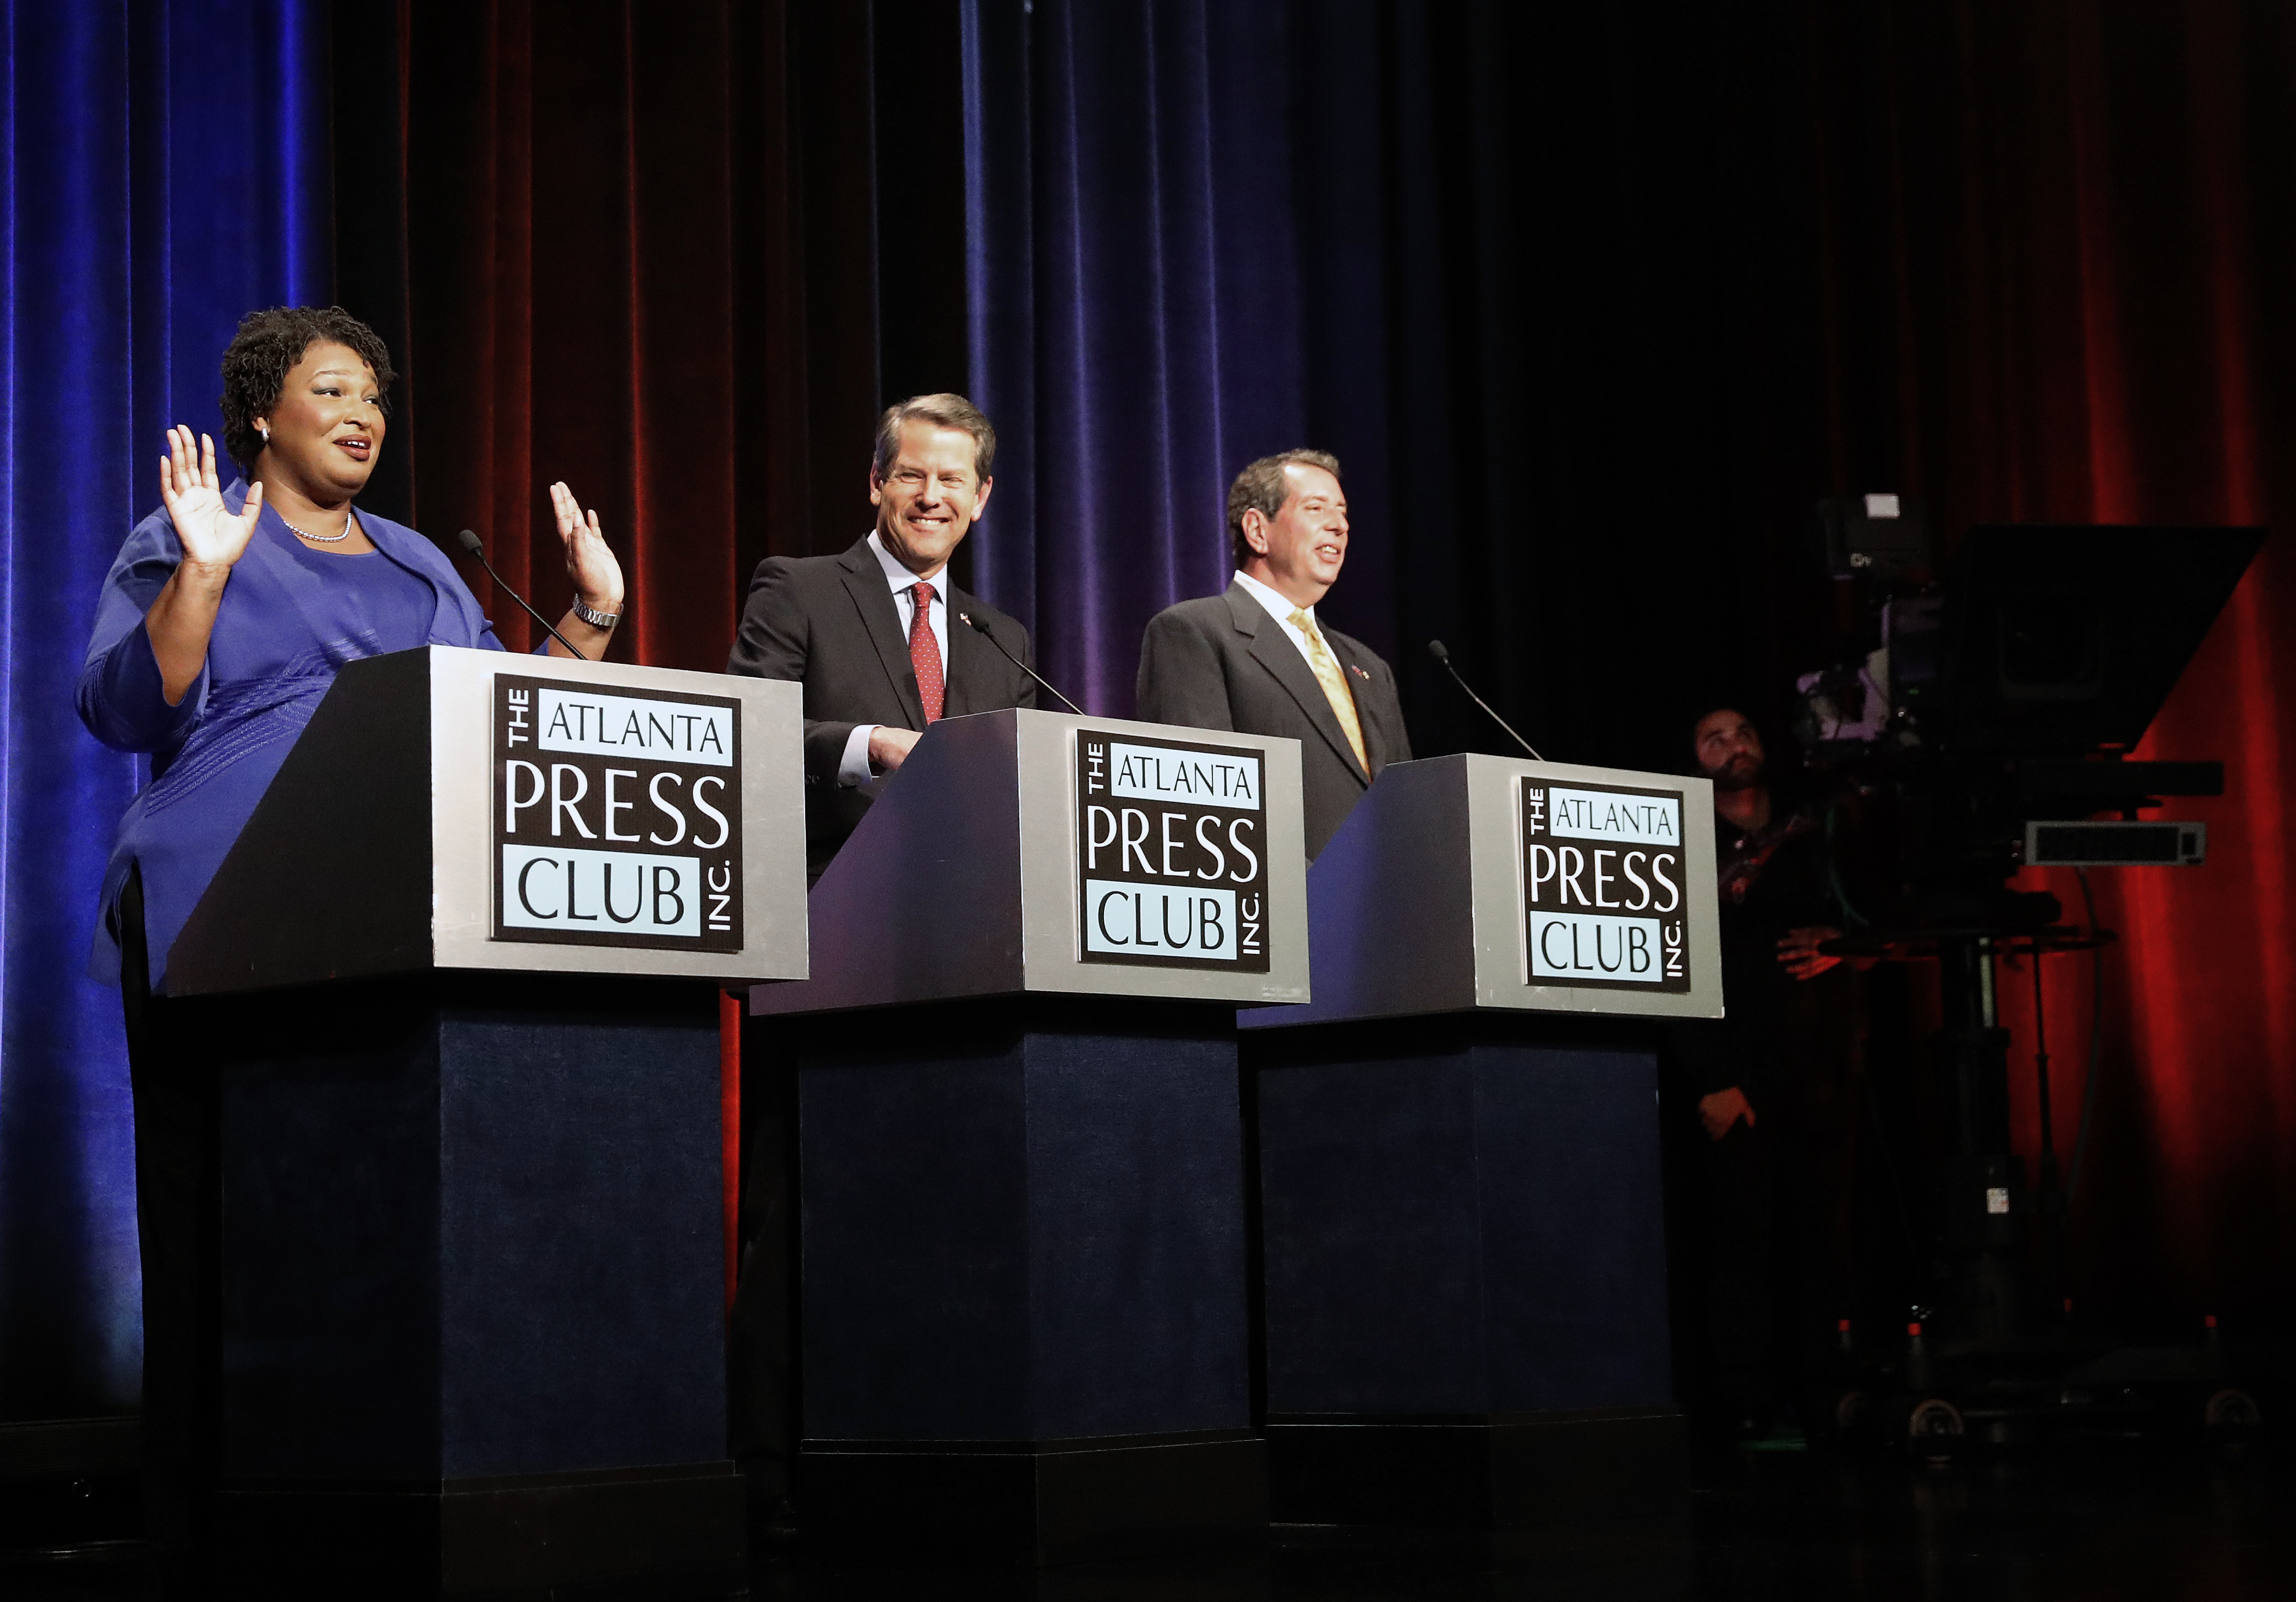 Georgia gubernatorial candidates (L-R) Democrat Stacey Abrams, Republican Brian Kemp and Libertarian Ted Metz react as a fire alarm interrupts their debate at Georgia Public Broadcasting in Midtown October 23, 2018 in Atlanta, Georgia. John Bazemore-Pool/Getty Images